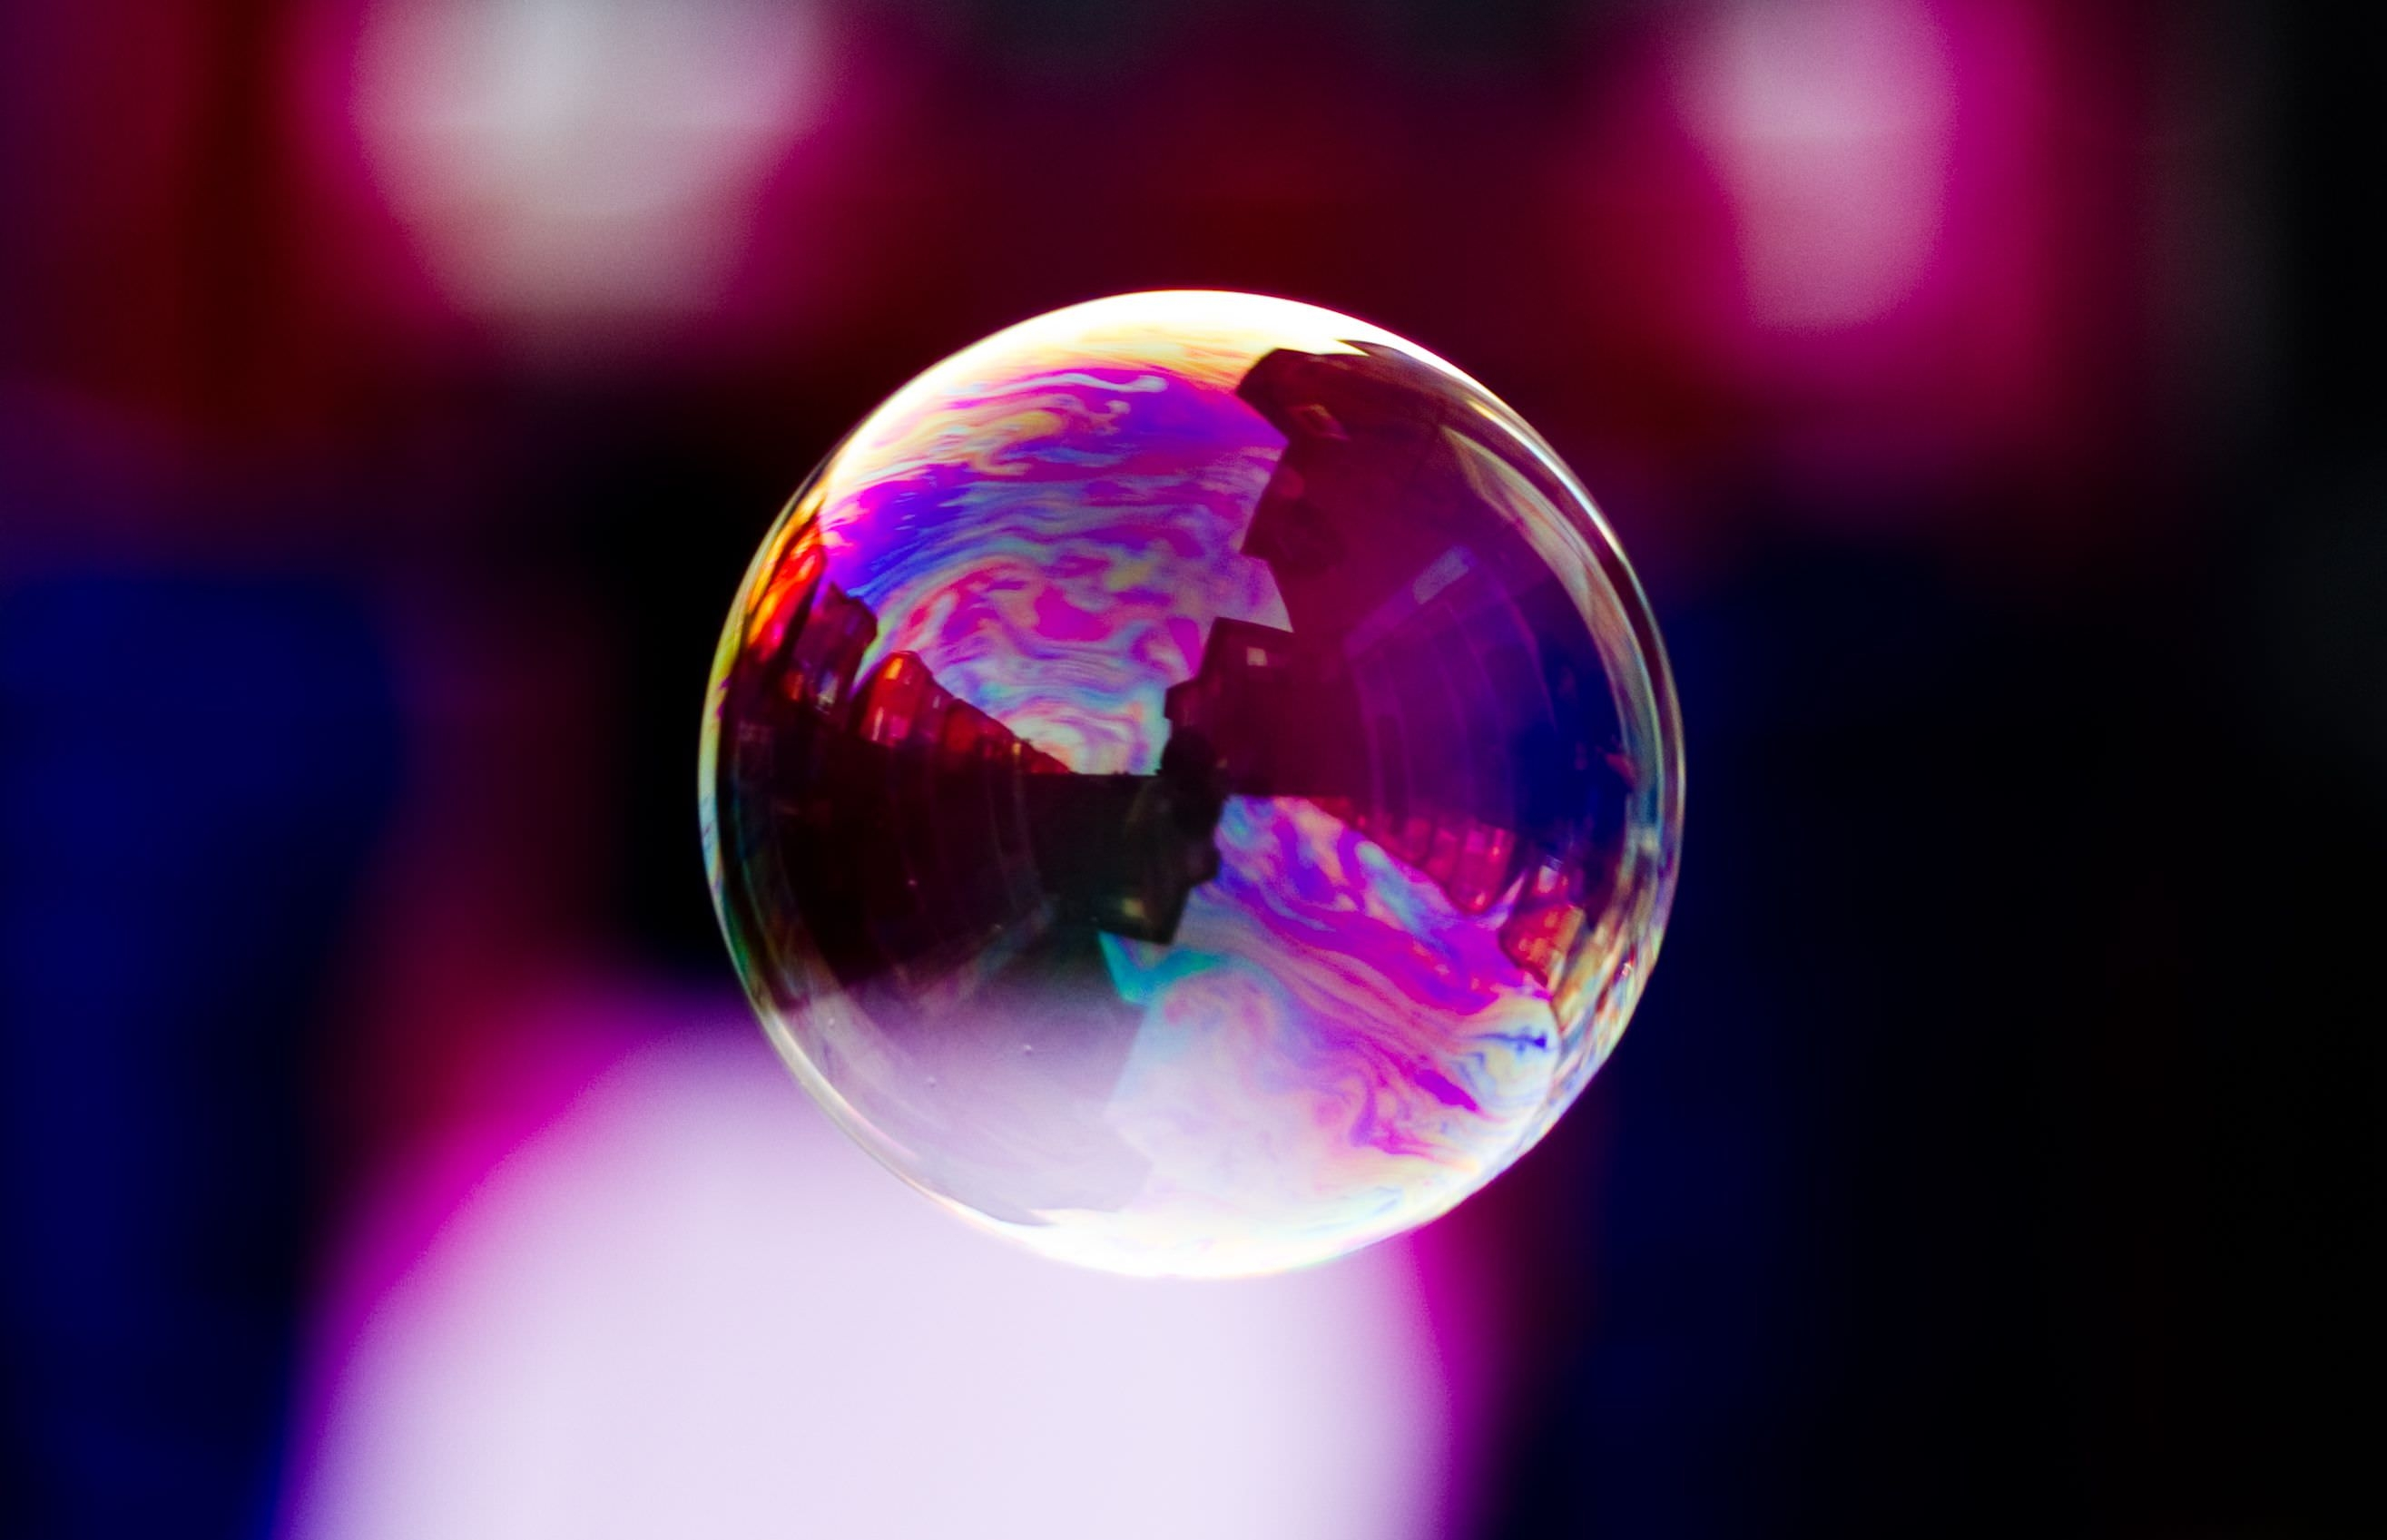 20 Bubble Desktop Wallpapers Backgrounds Images